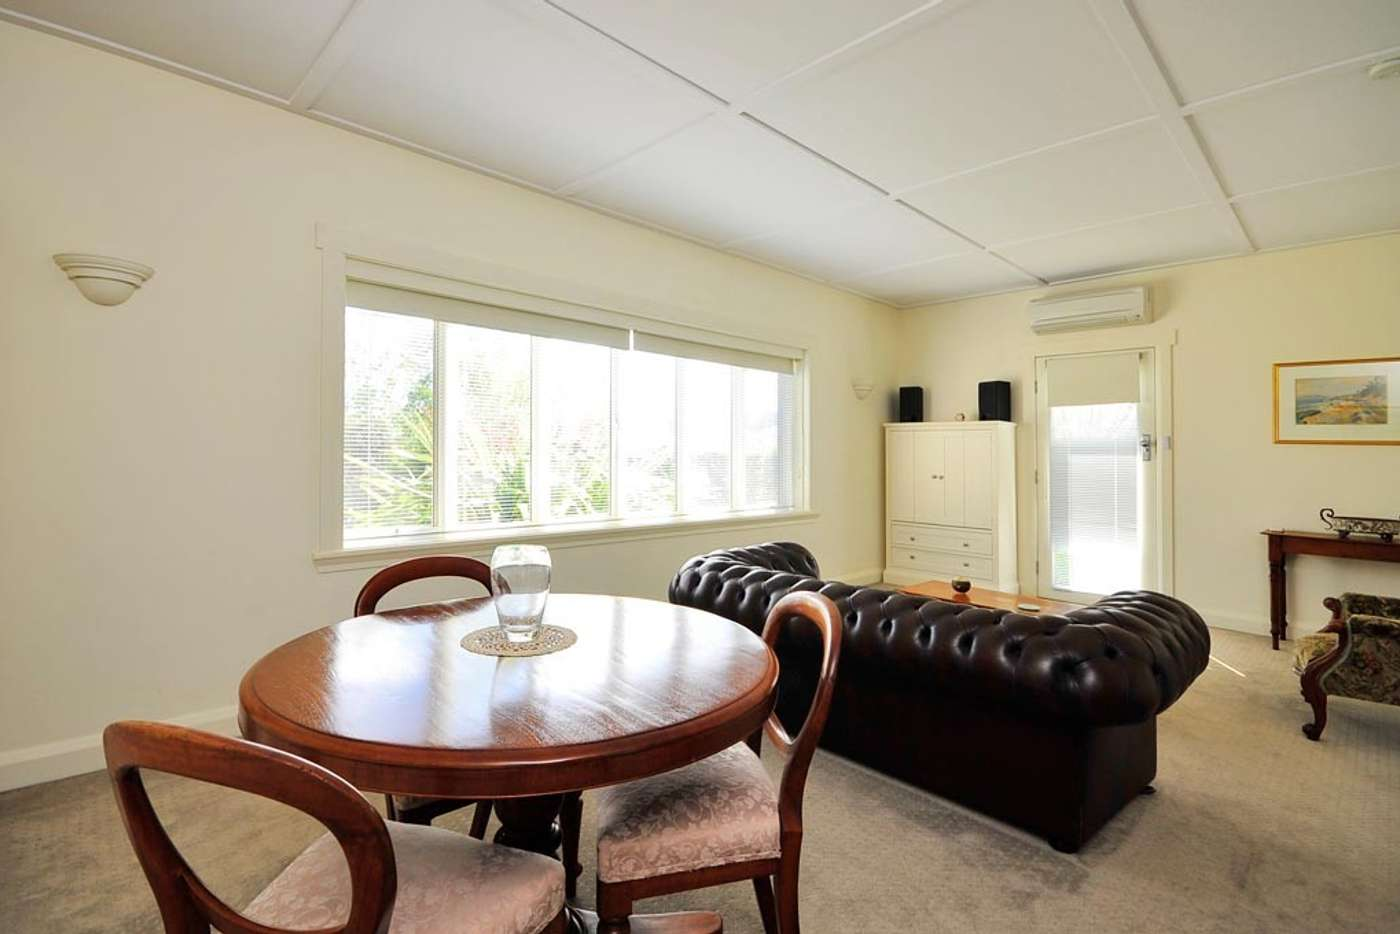 Main view of Homely apartment listing, 30 Landsborough Avenue, Newstead TAS 7250